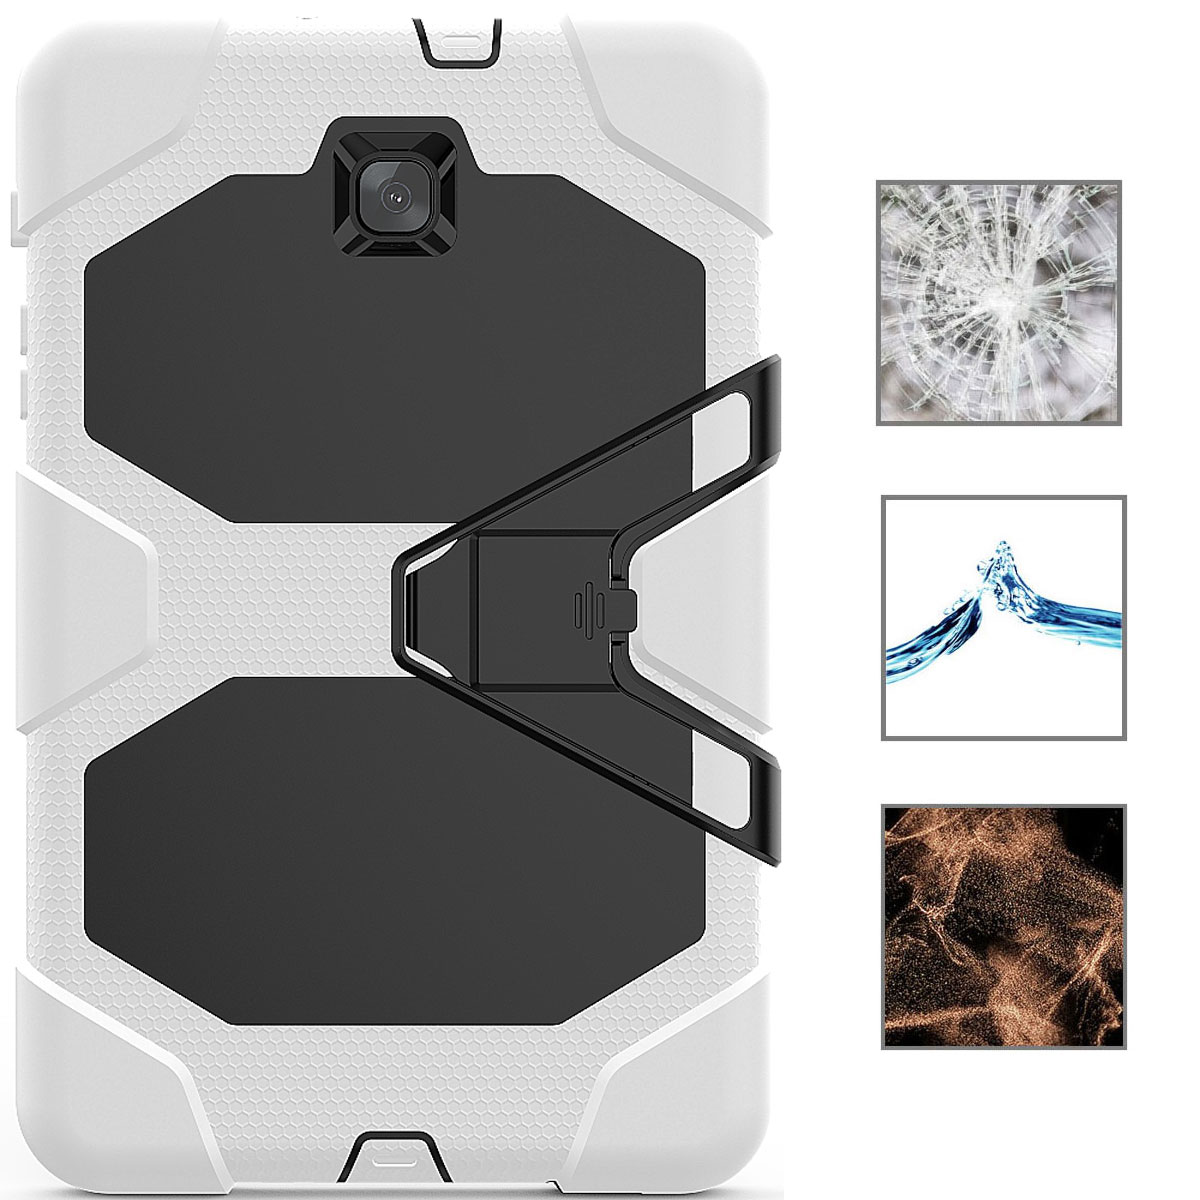 Rugged-Hard-Case-For-Samsung-Galaxy-Tab-A-8-0-2018-SM-T387-with-Screen-Protector thumbnail 38